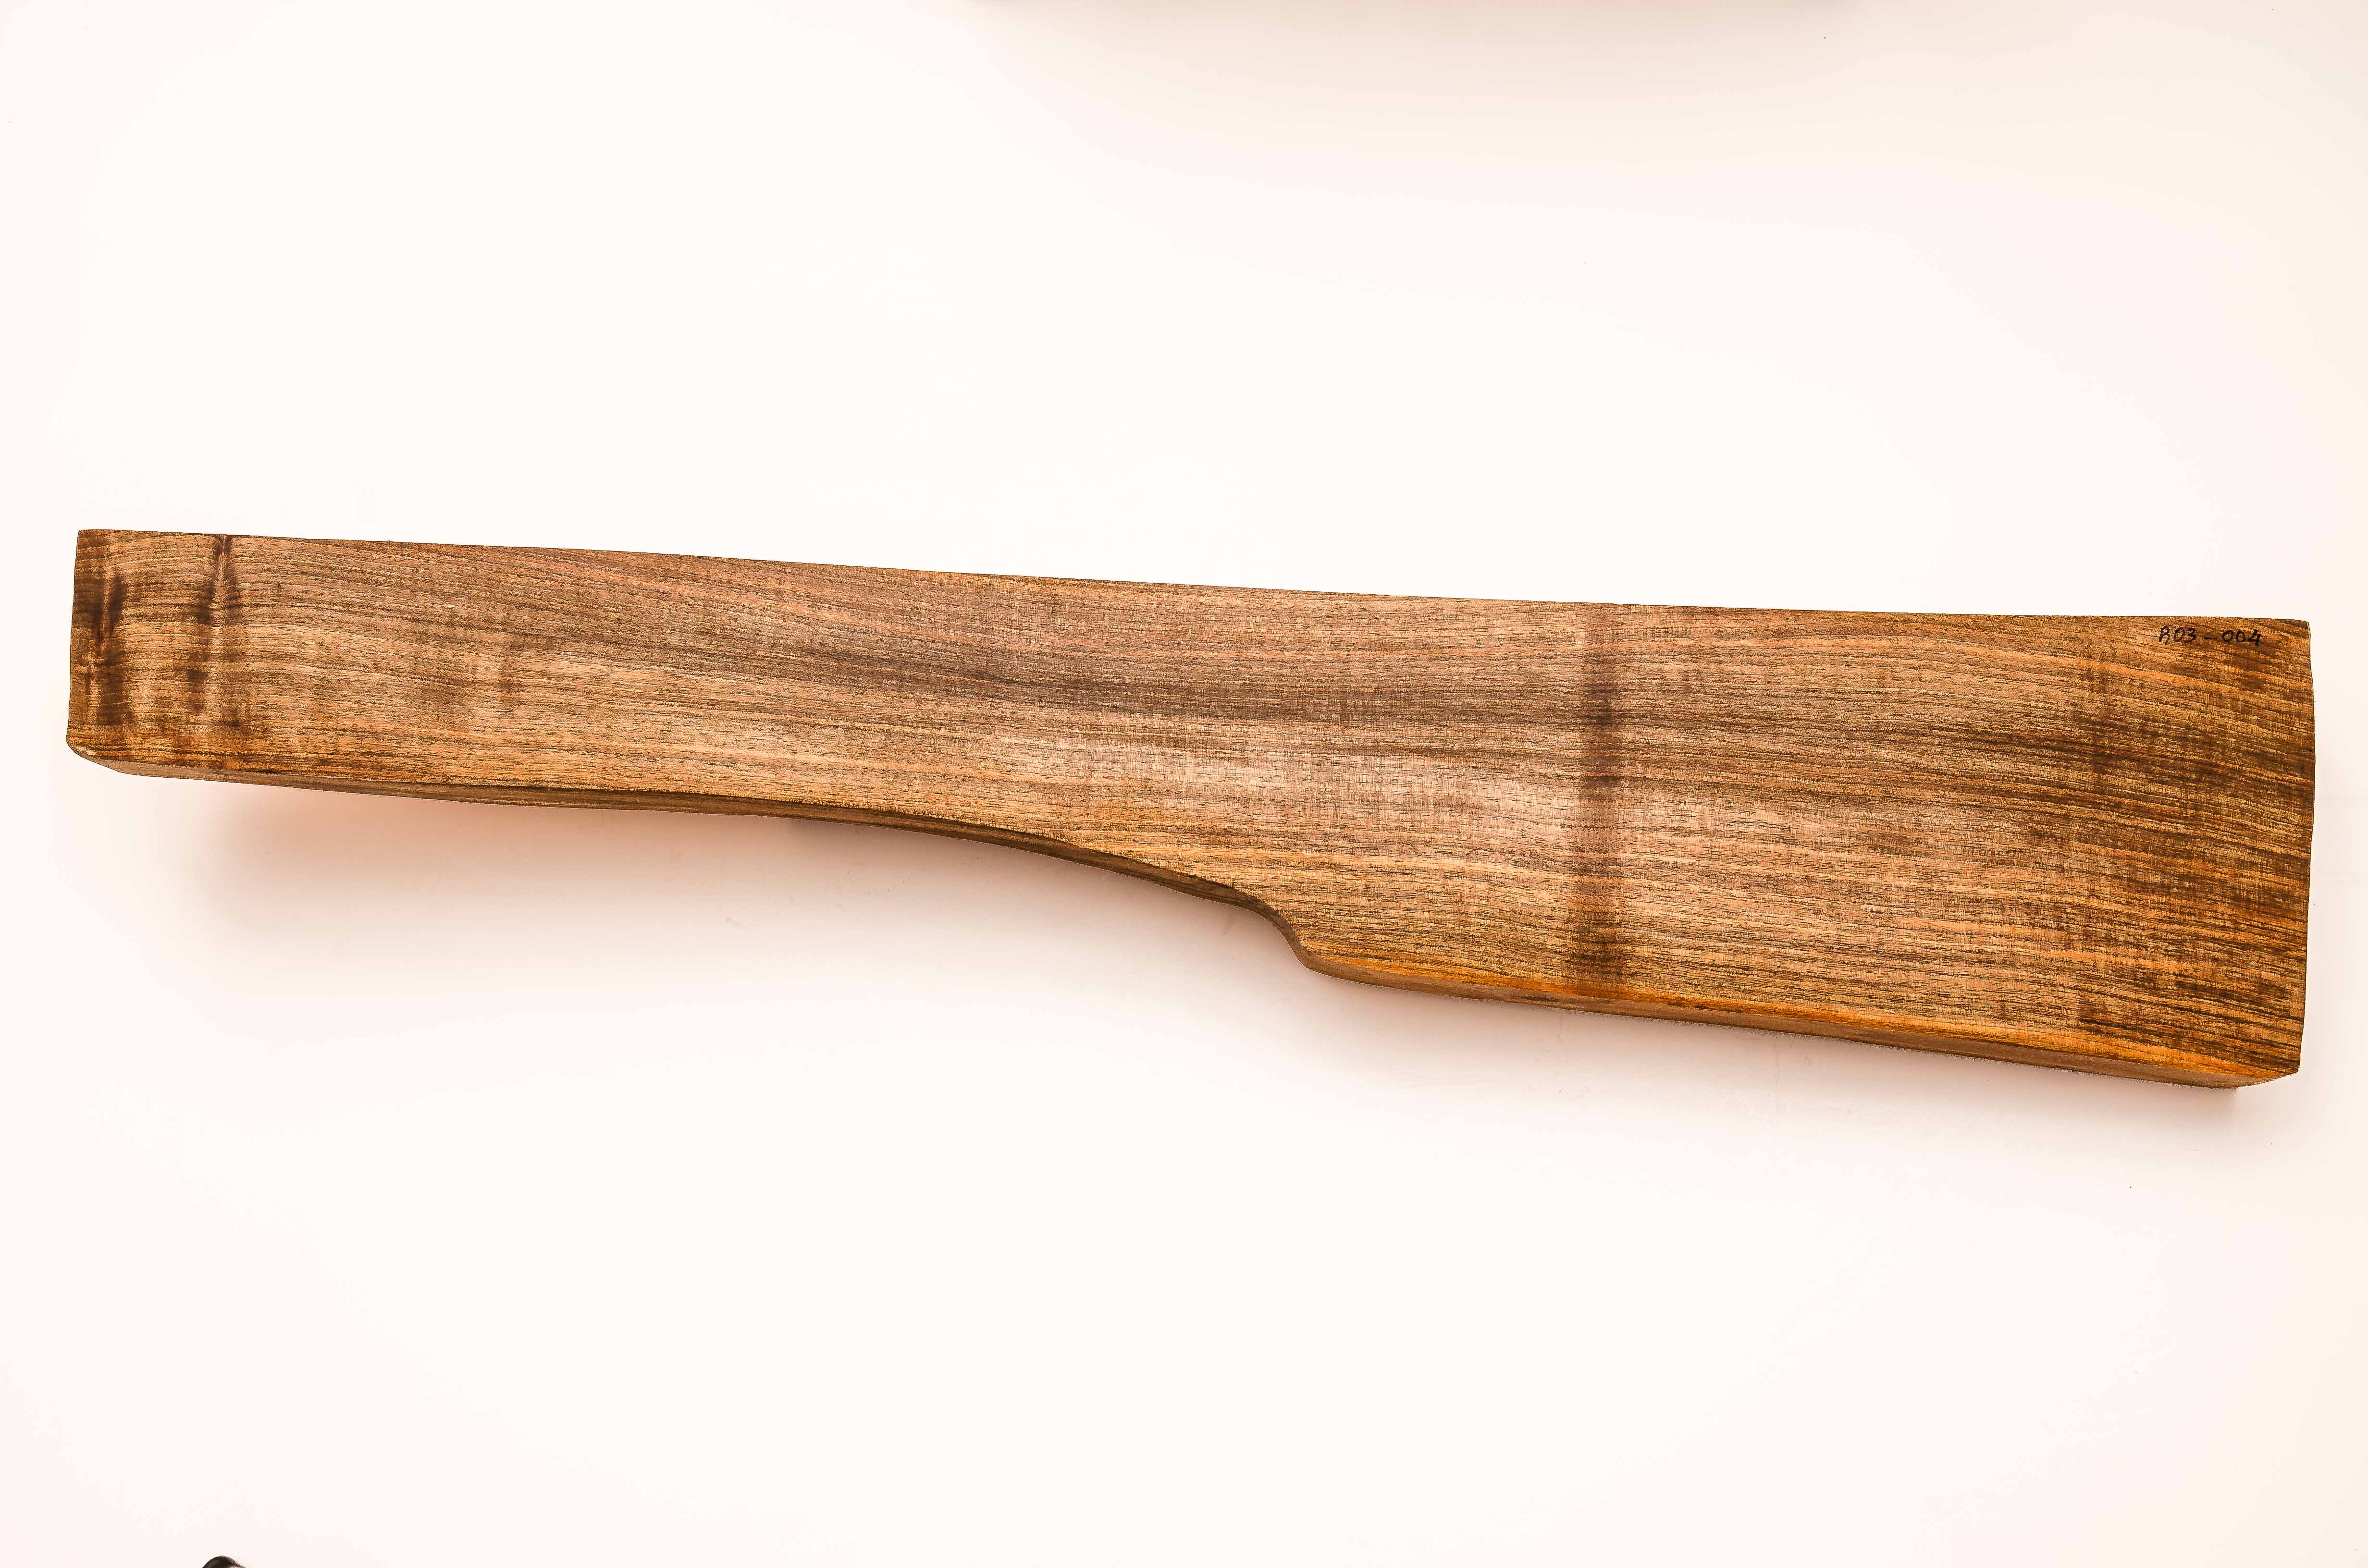 walnut_stock_blanks_for_guns_and_rifles-0663